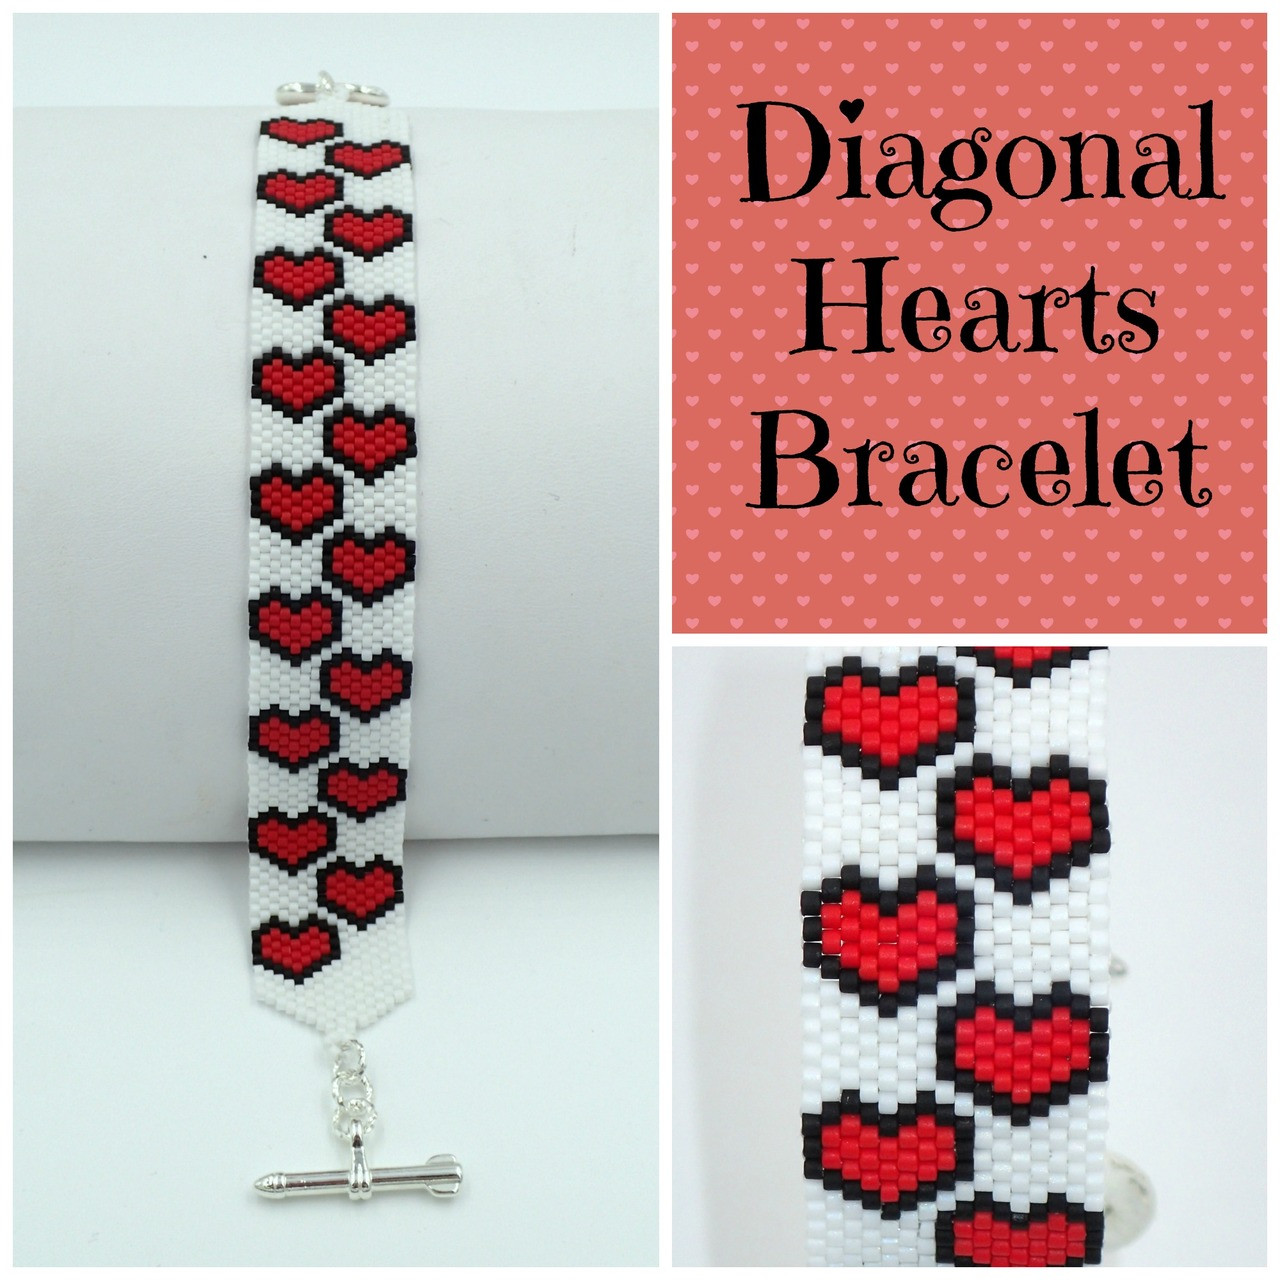 Diagonal Hearts Bracelet PRINTED Pattern - Mailed to your home